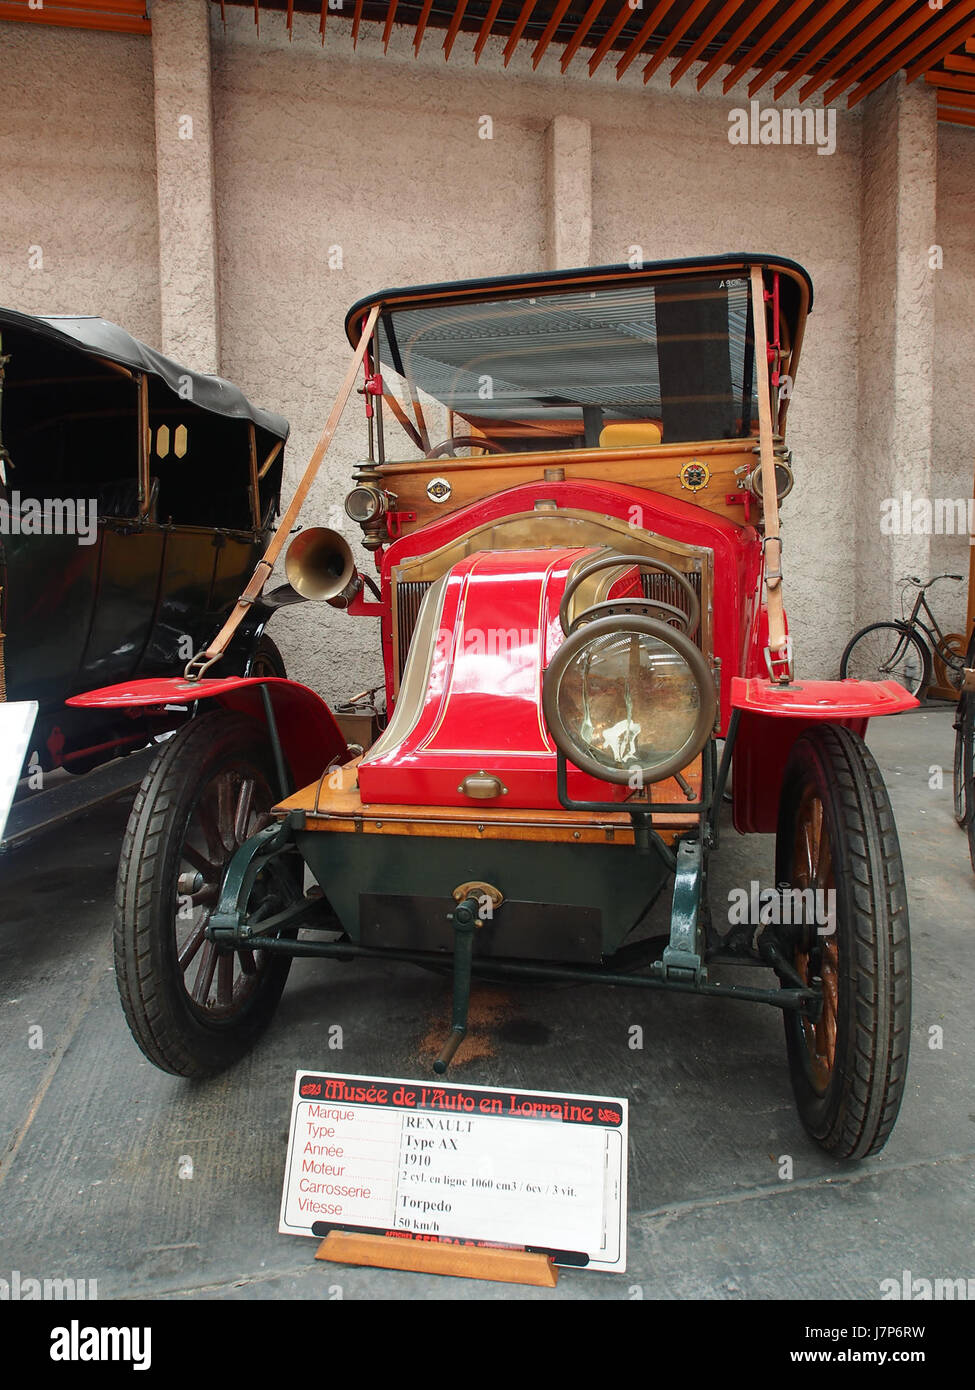 1910 Renault AX, 2 cylinders, 1060 cm3, 6cv pic4 - Stock Image